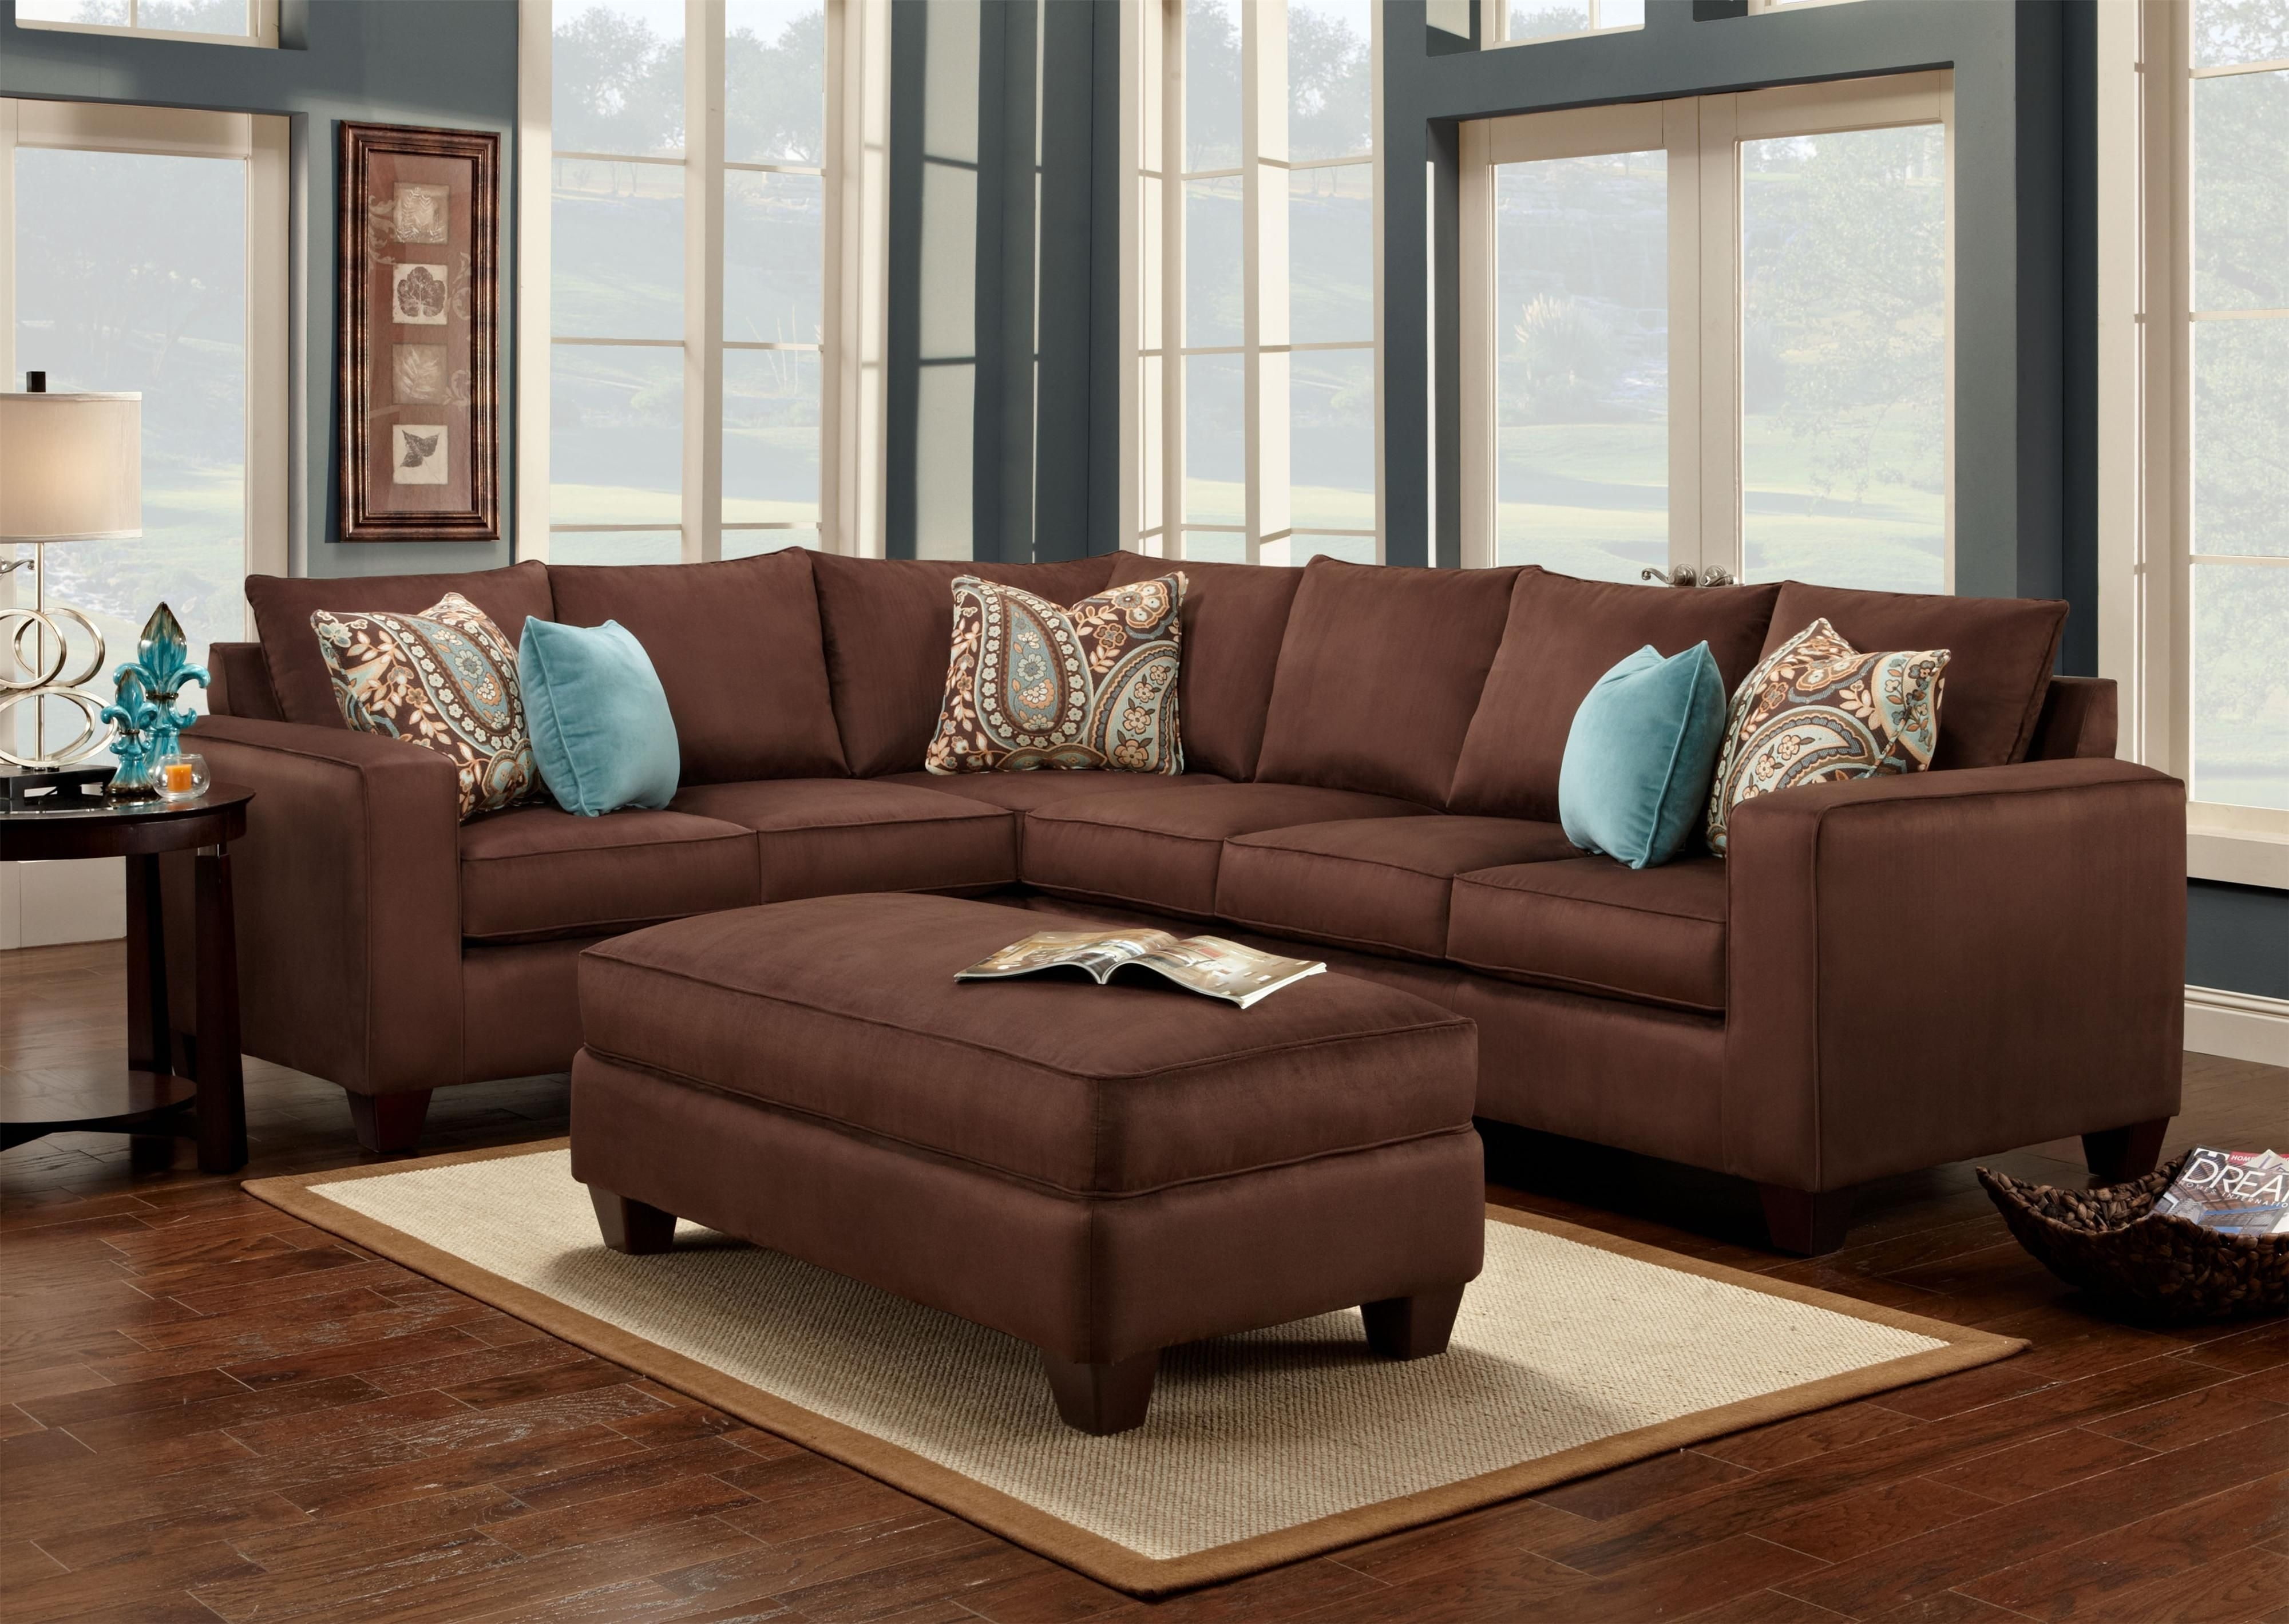 Pleasant Dark Brown Couch Decor Randolph Indoor And Outdoor Design Bralicious Painted Fabric Chair Ideas Braliciousco